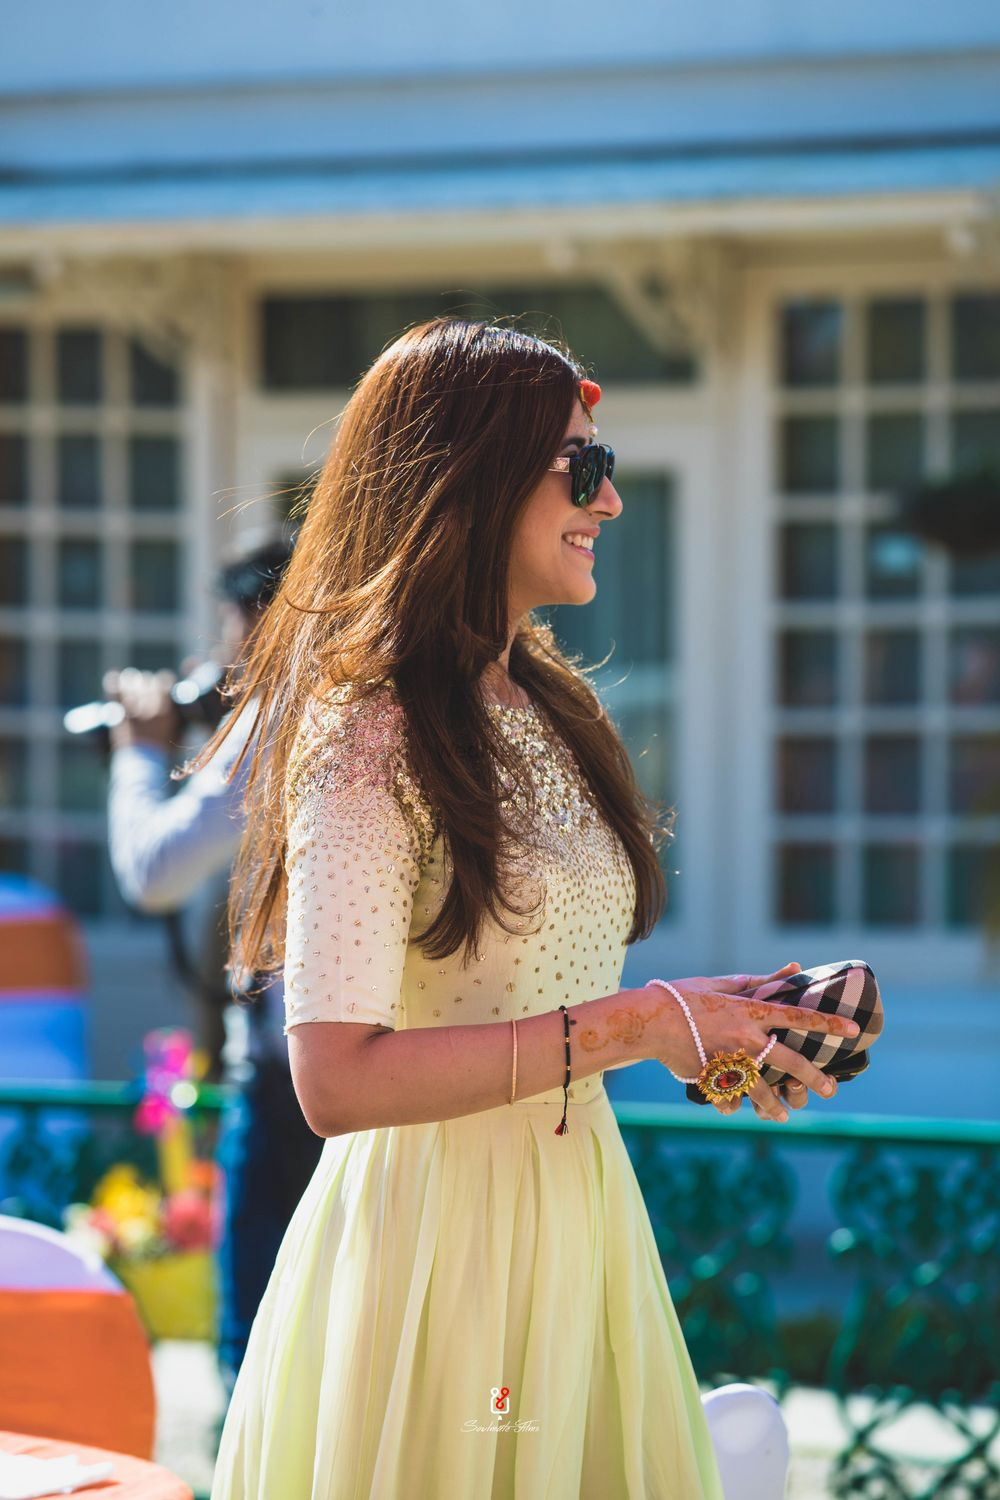 Photo of A portrait clicked of the sister of the bride in a yellow outfit and wearing sunglasses